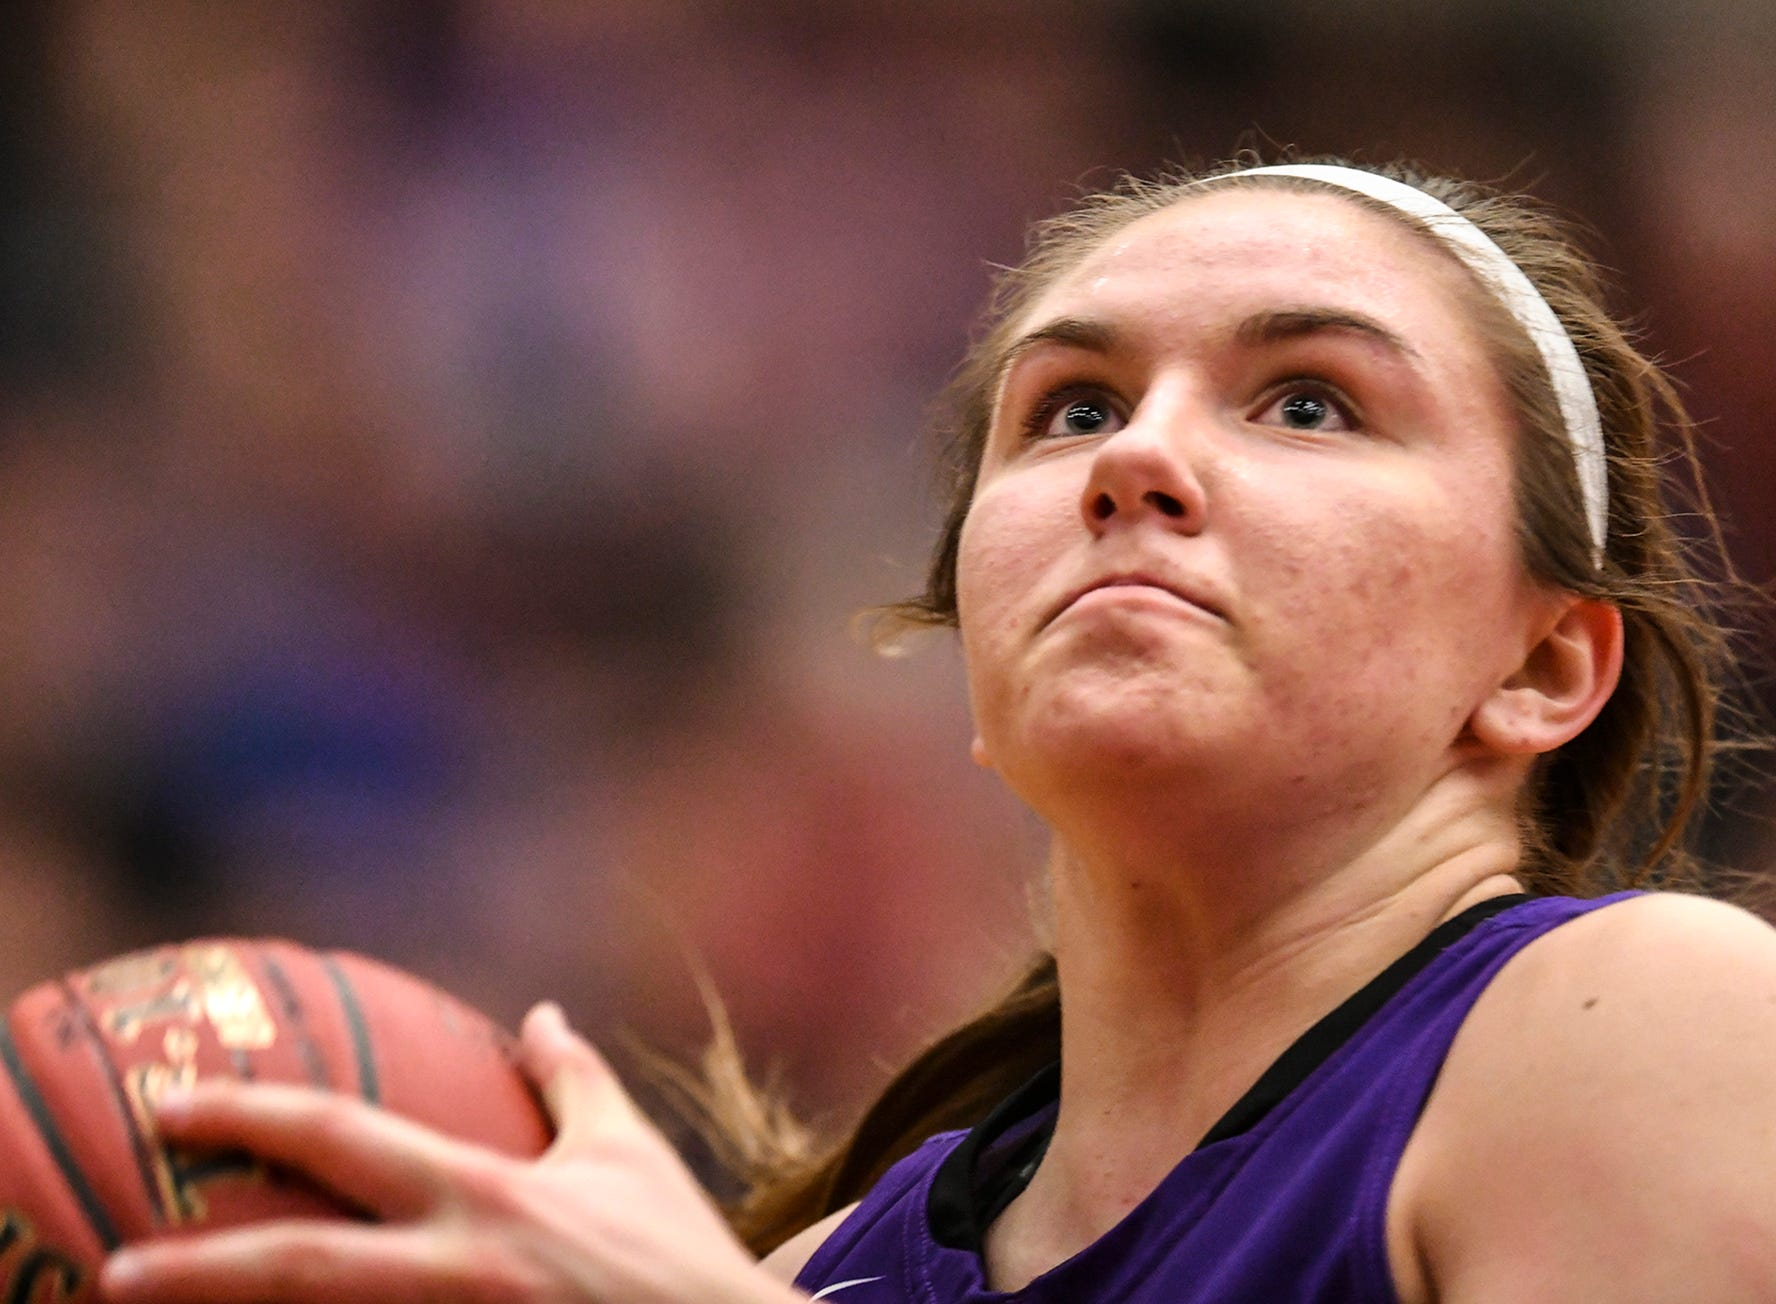 Albany's Paige Meyer concentrates on the hoop during the Section 6-2A championship game against Pine City Friday, March 8, at Halenbeck Hall in St. Cloud.